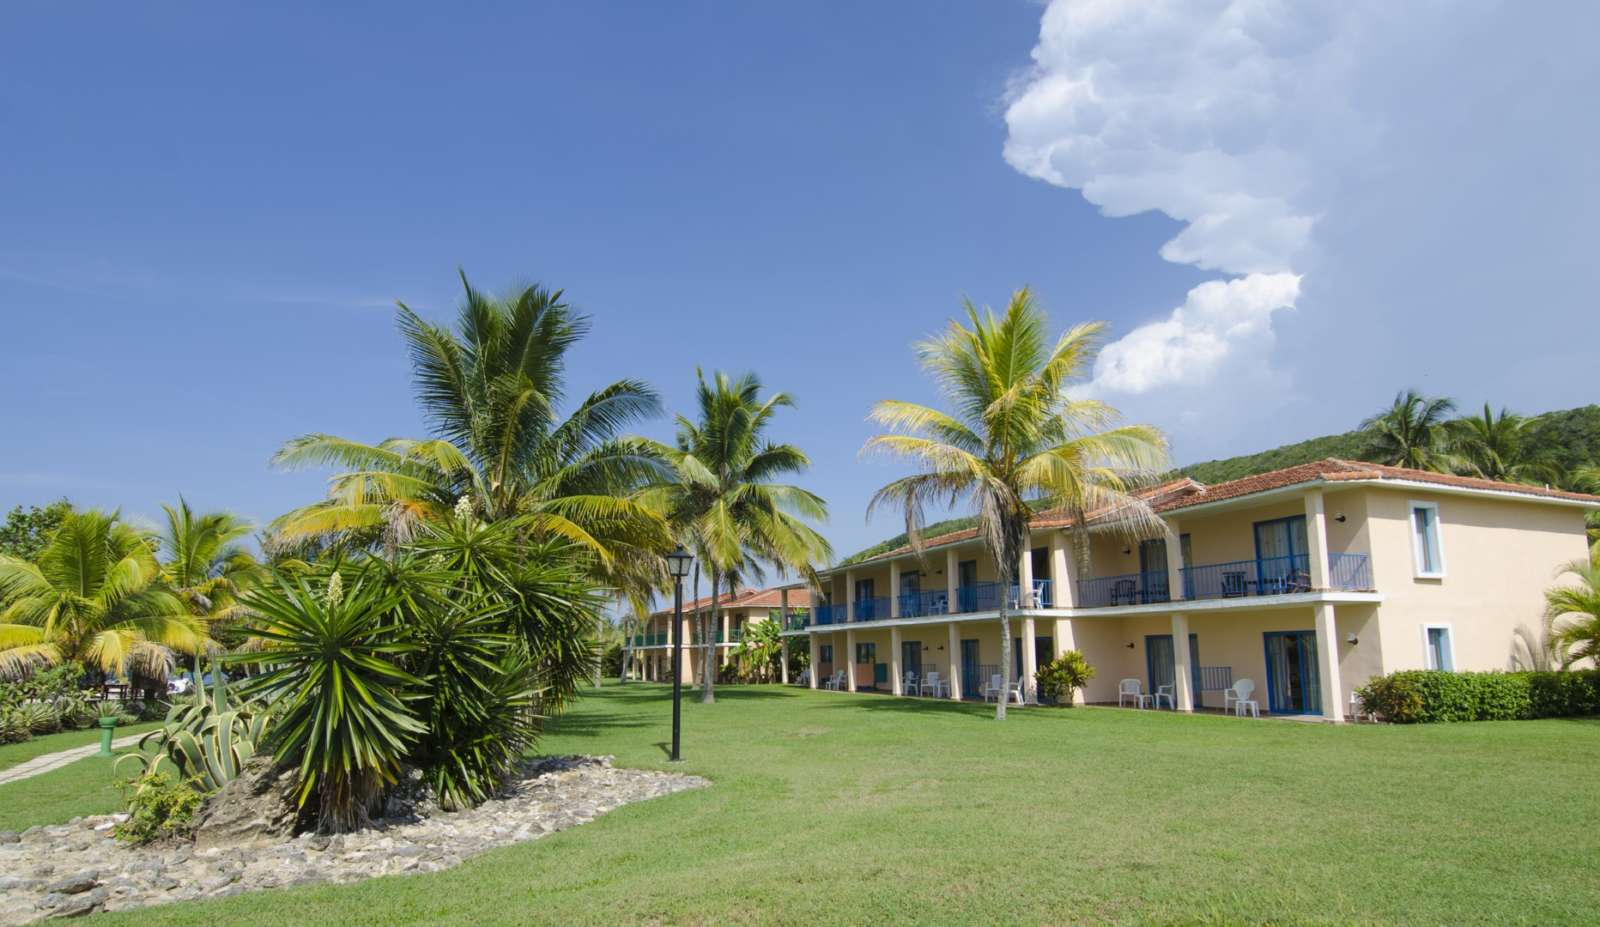 Accommodation block at Memories Jibacoa